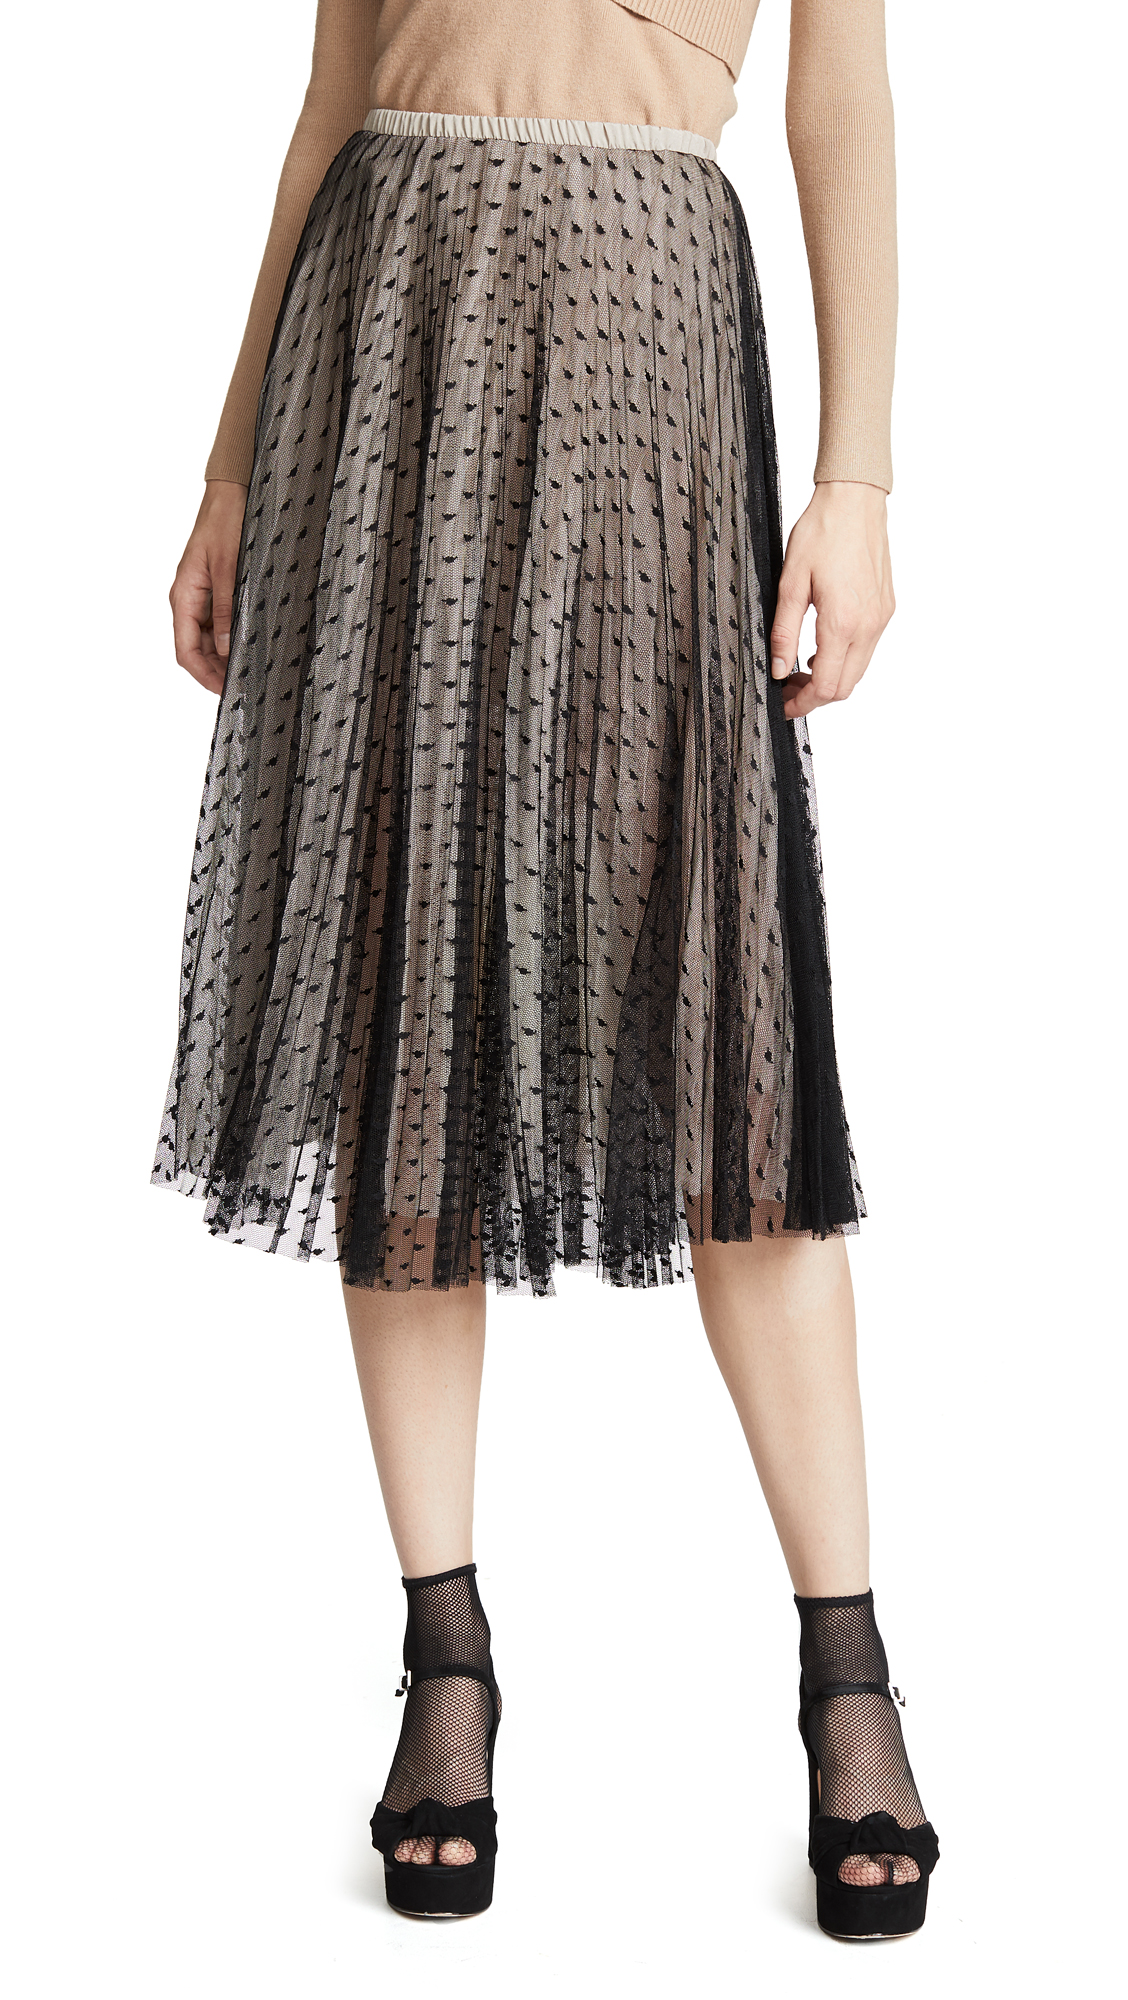 LOYD/FORD Multi Layer Tulle Skirt in Black/Nude